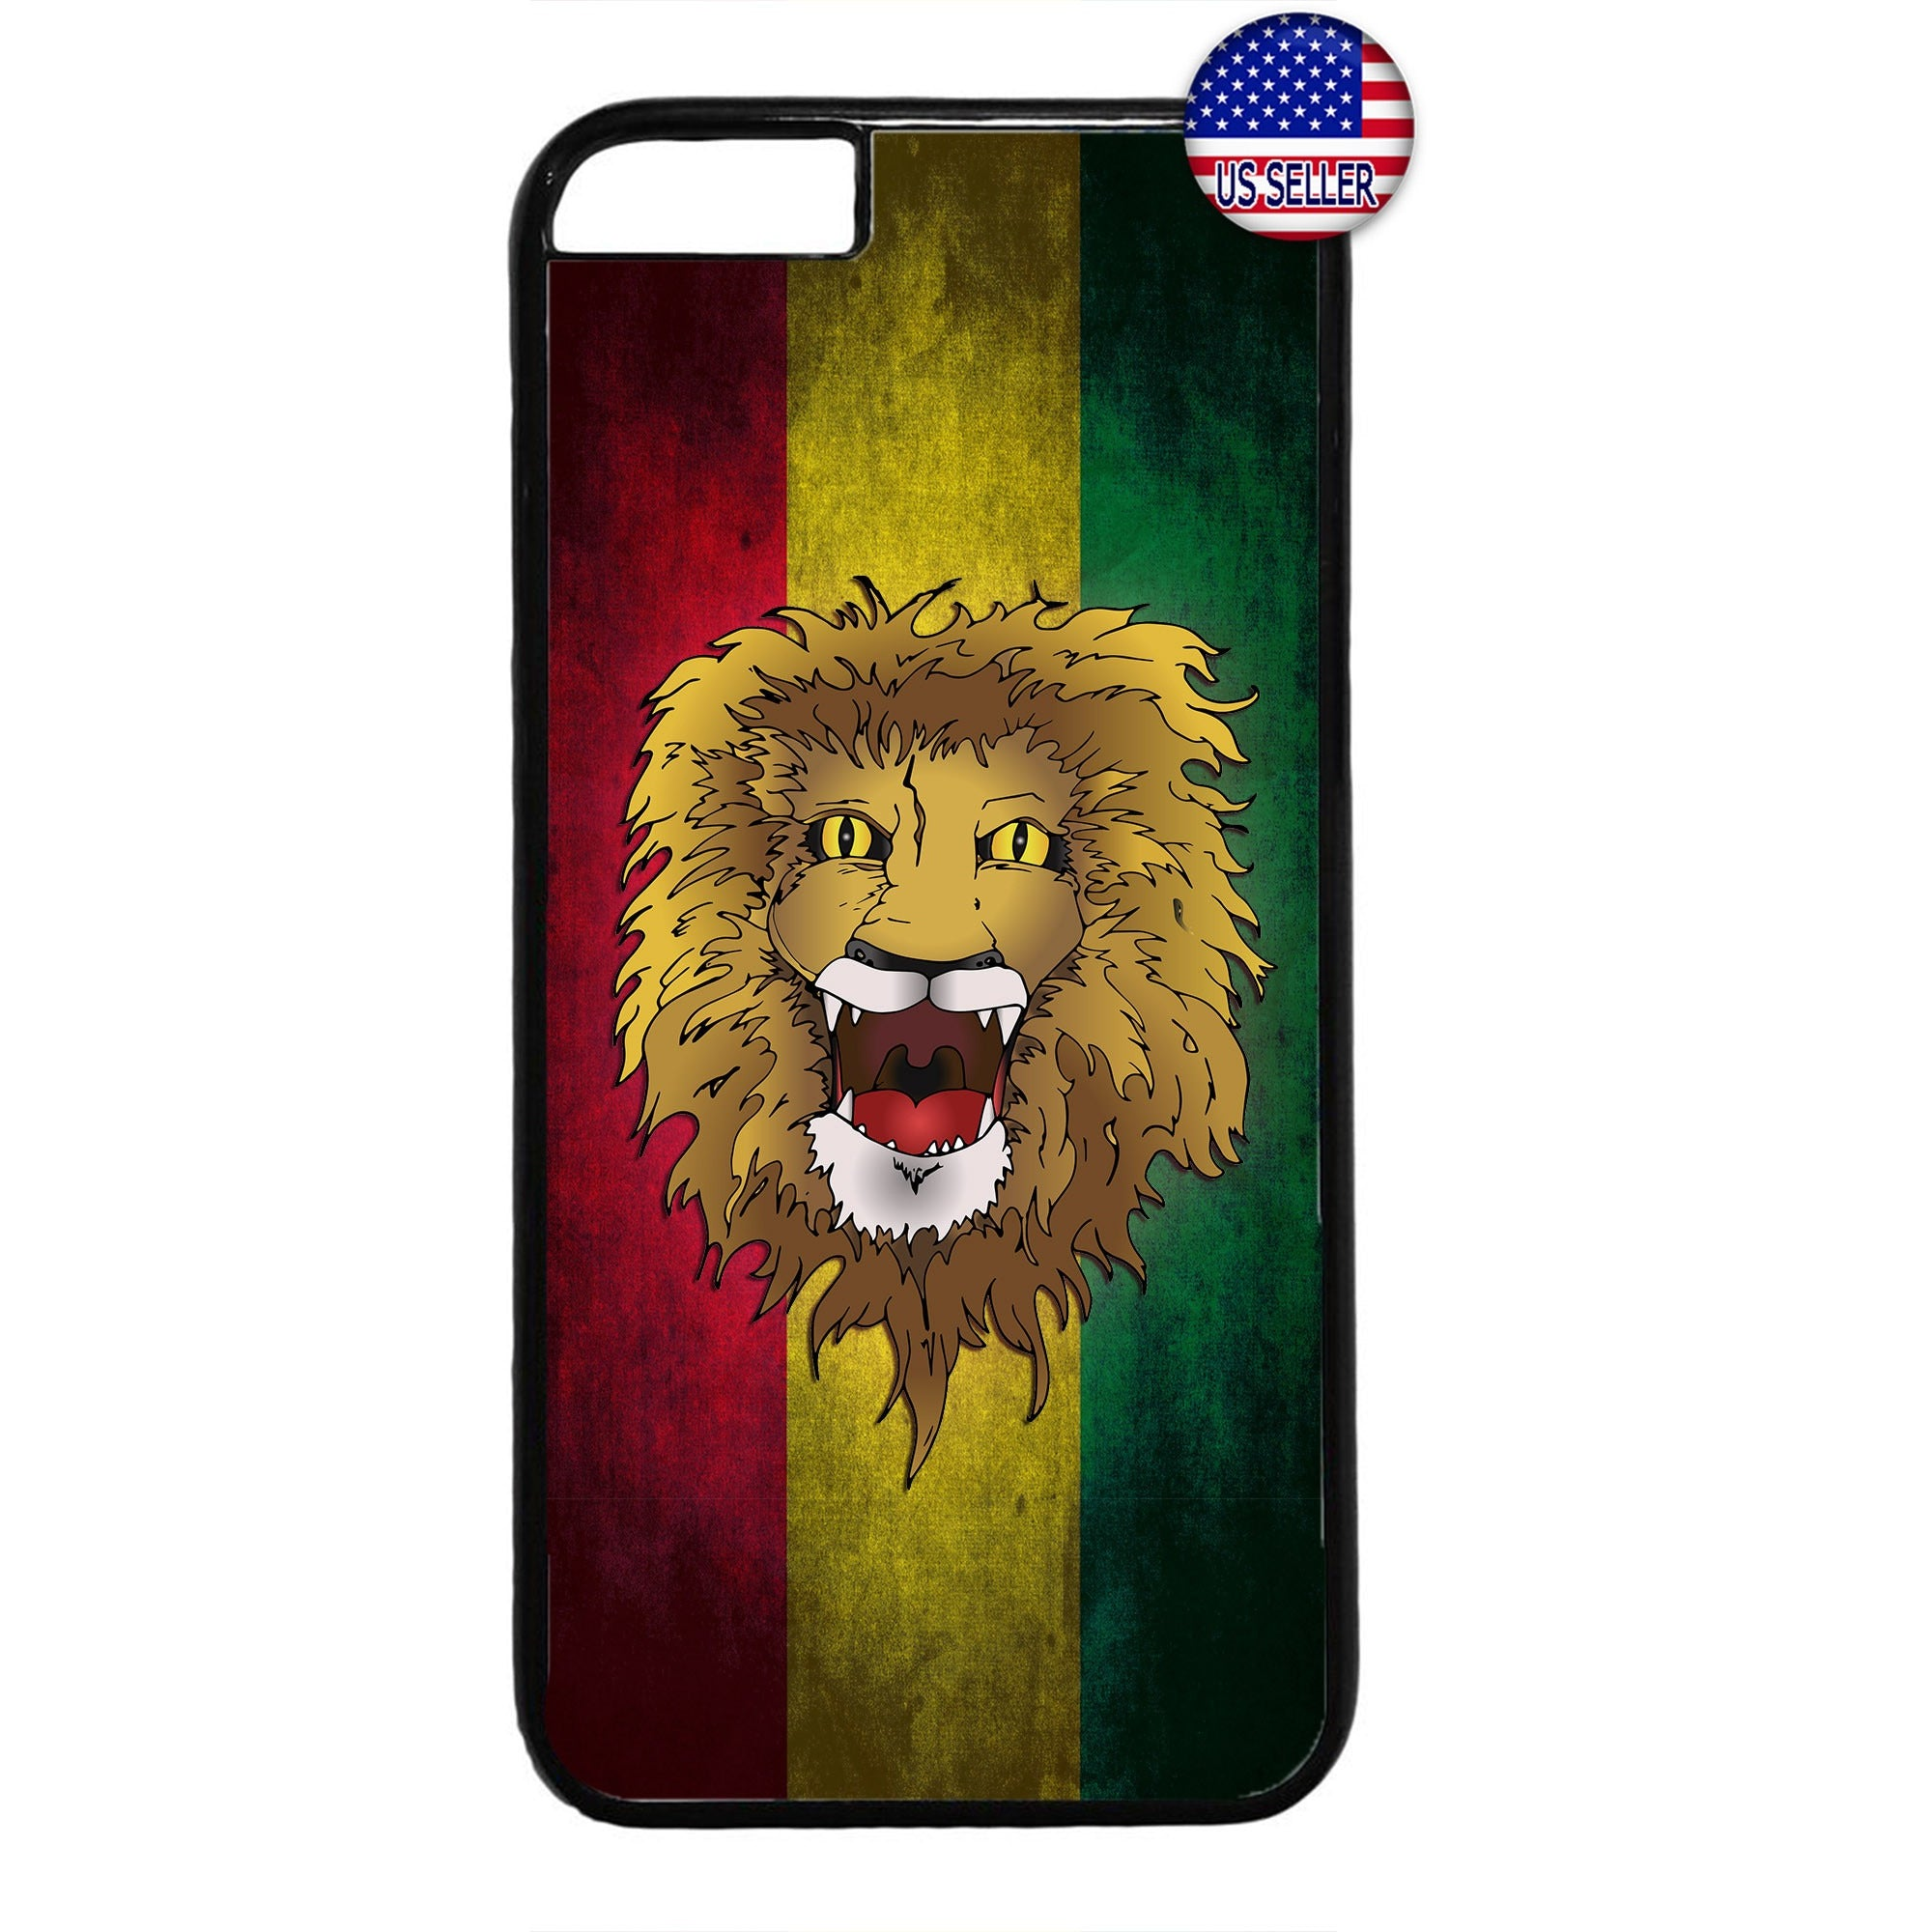 Reggae Rastafari Lion Marijuana Rubber Case Cover For Iphone